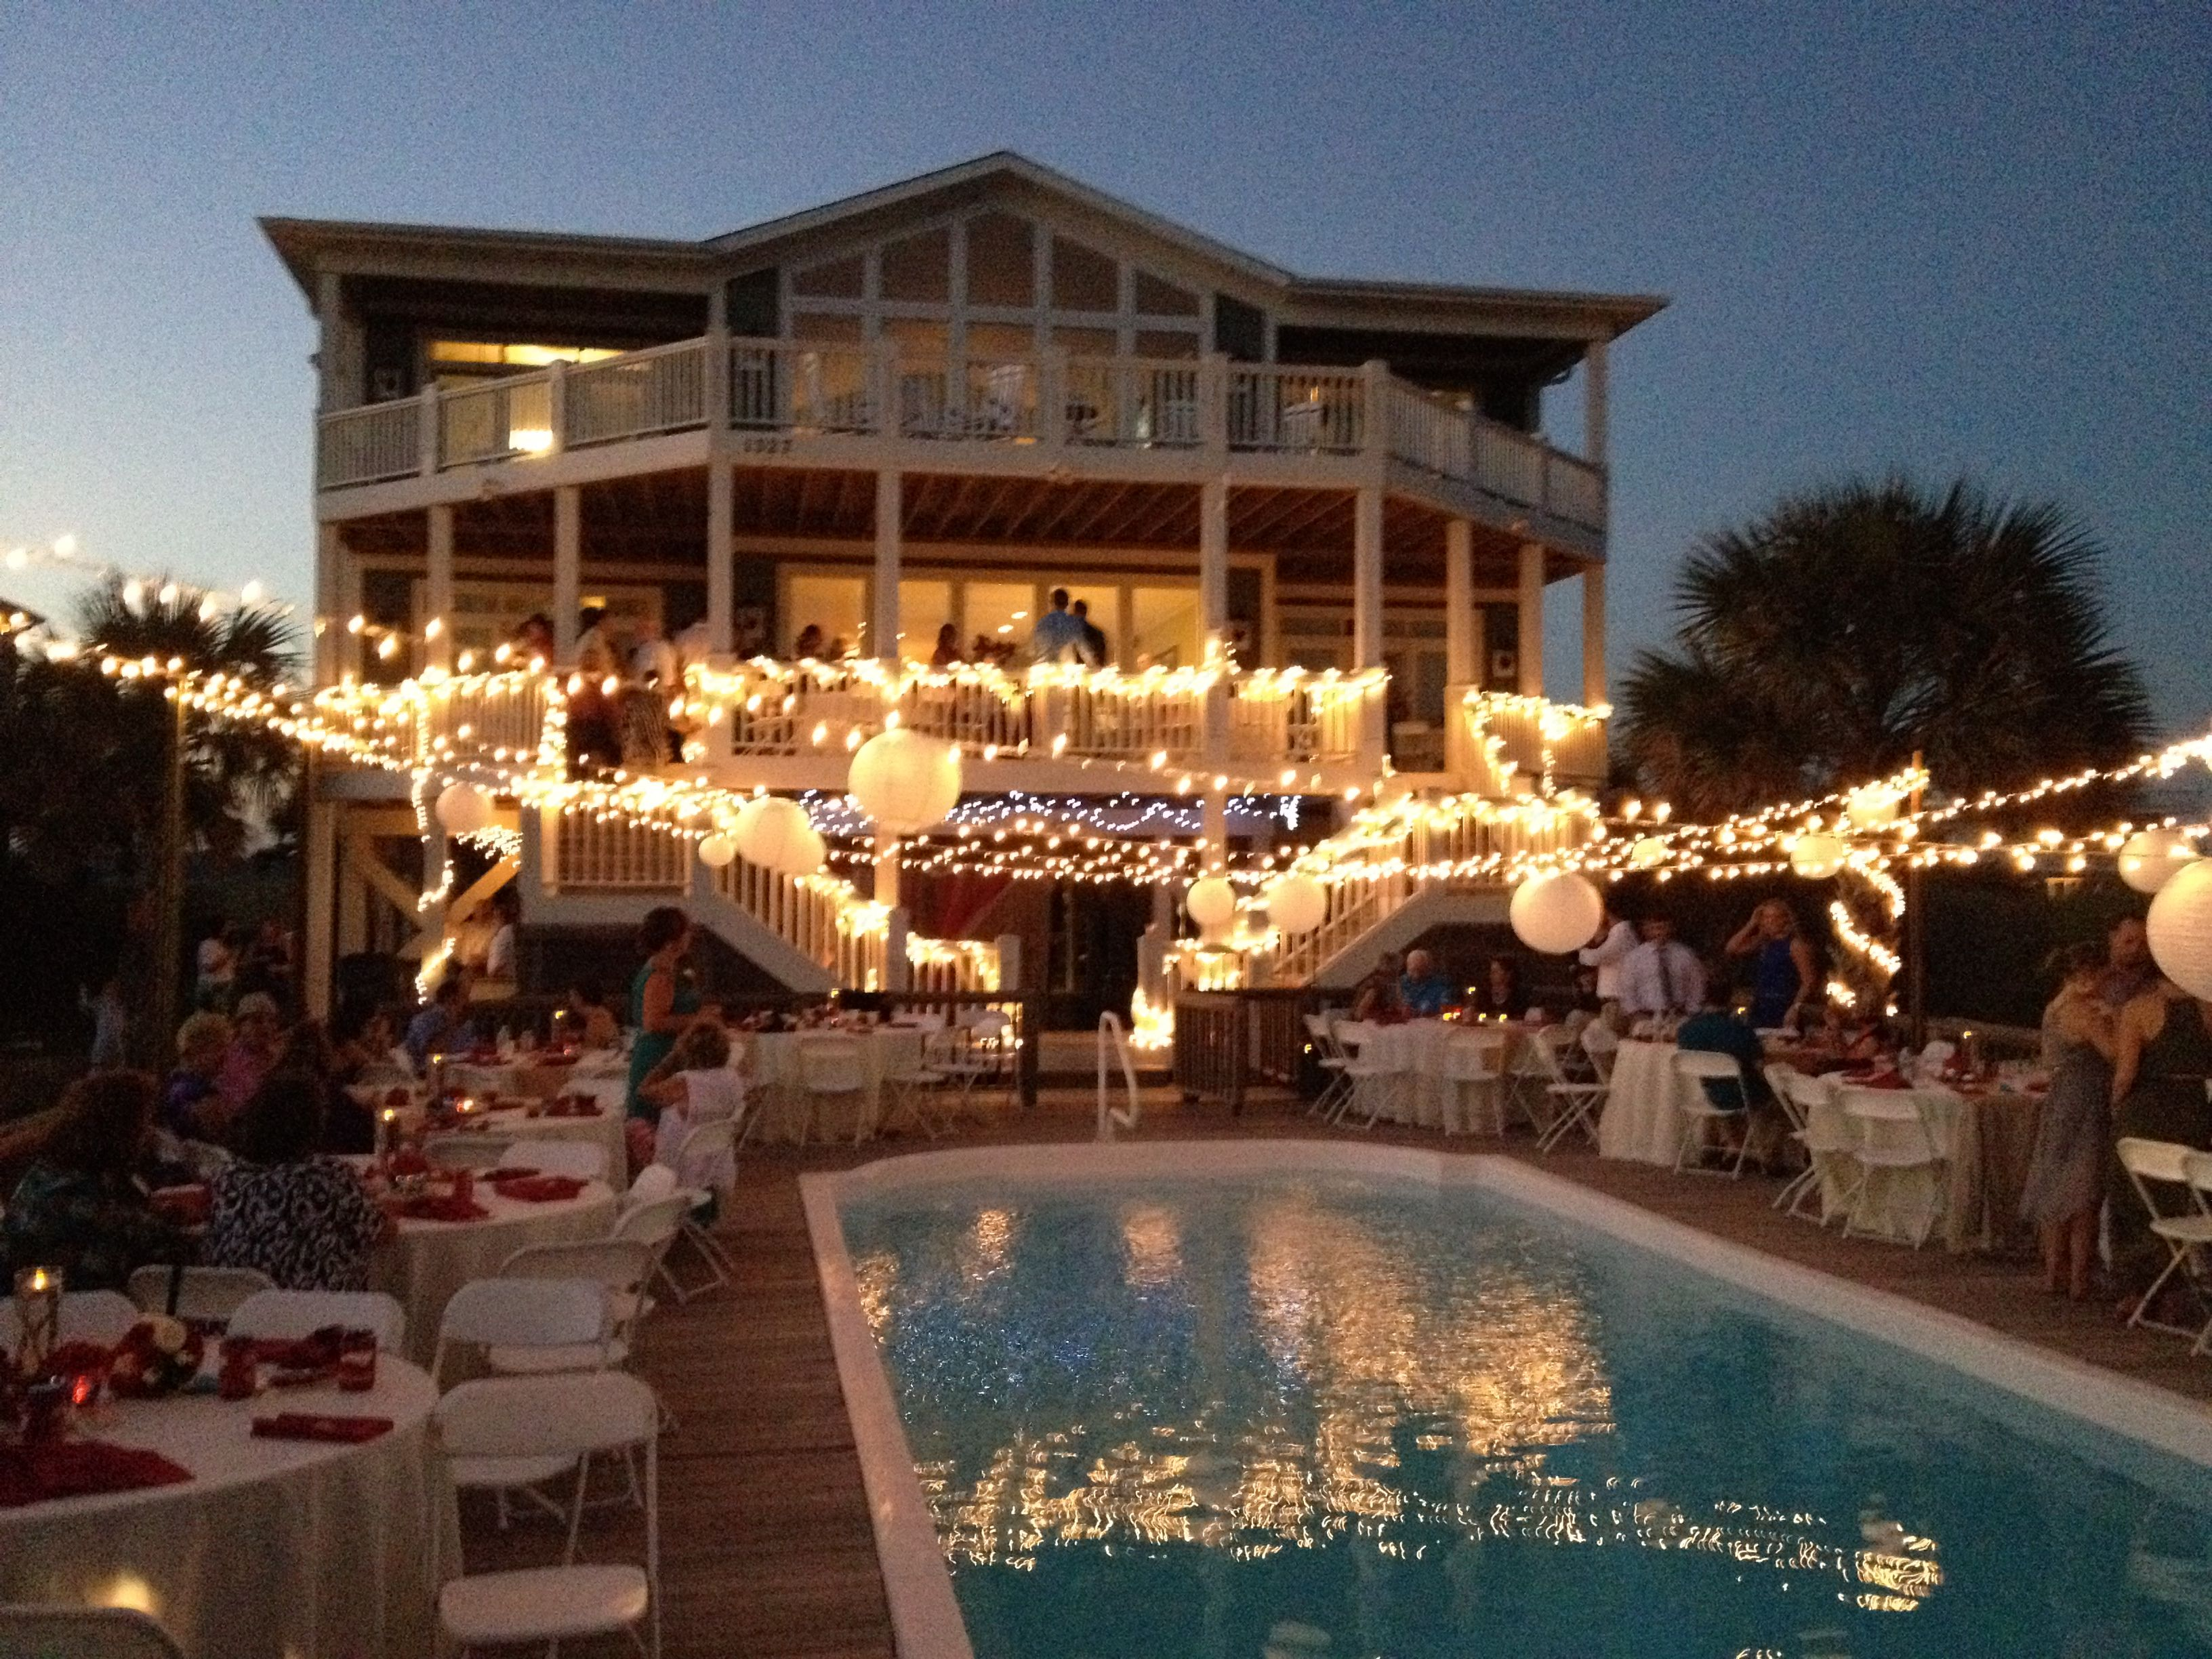 Evening Wedding Lights Across Pool Bamboo poles zip tied to pool